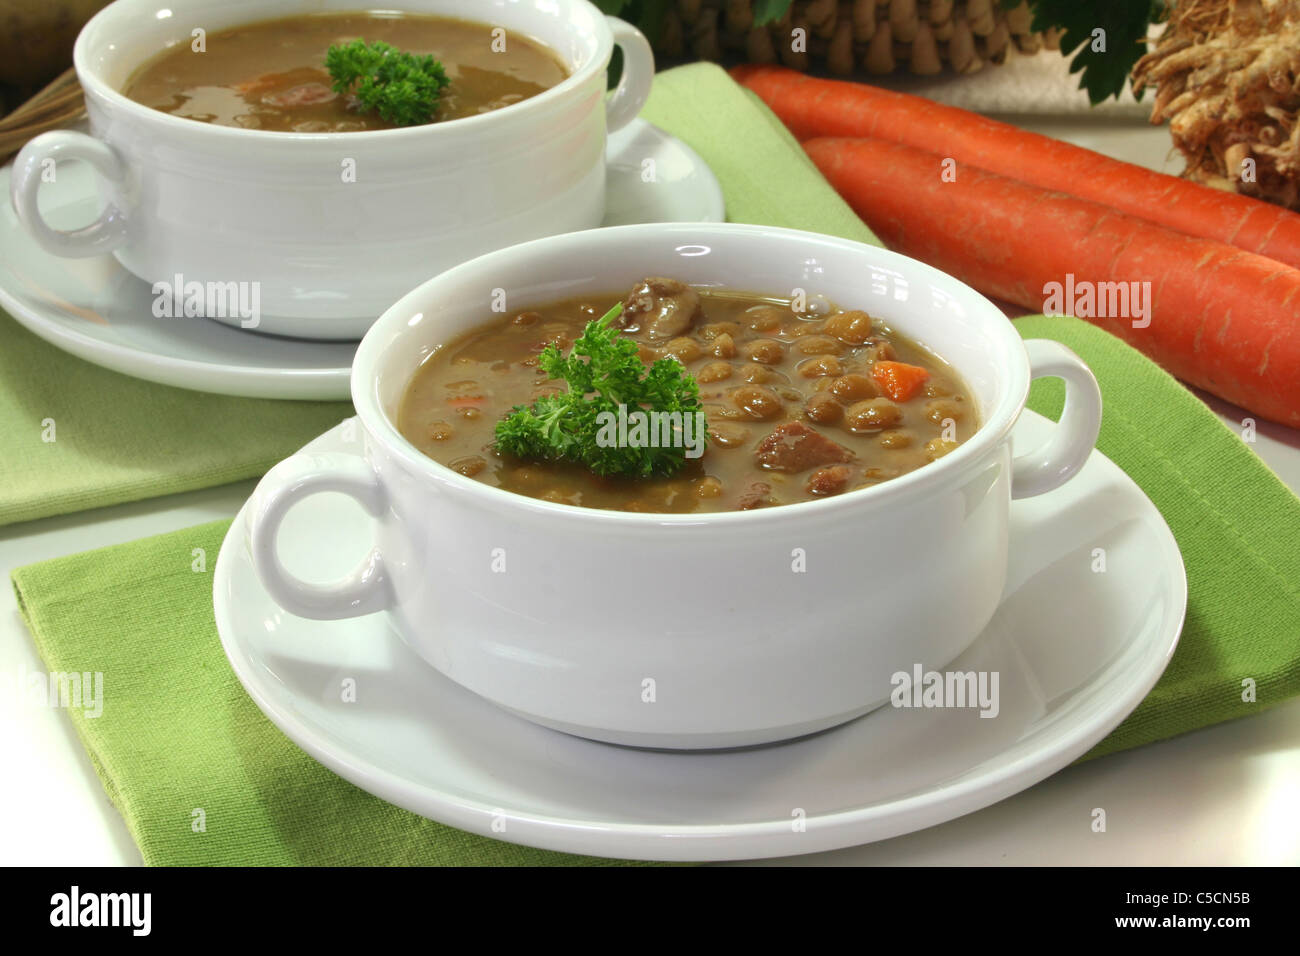 Lentil stew with potatoes, carrots and parsley Stock Photo